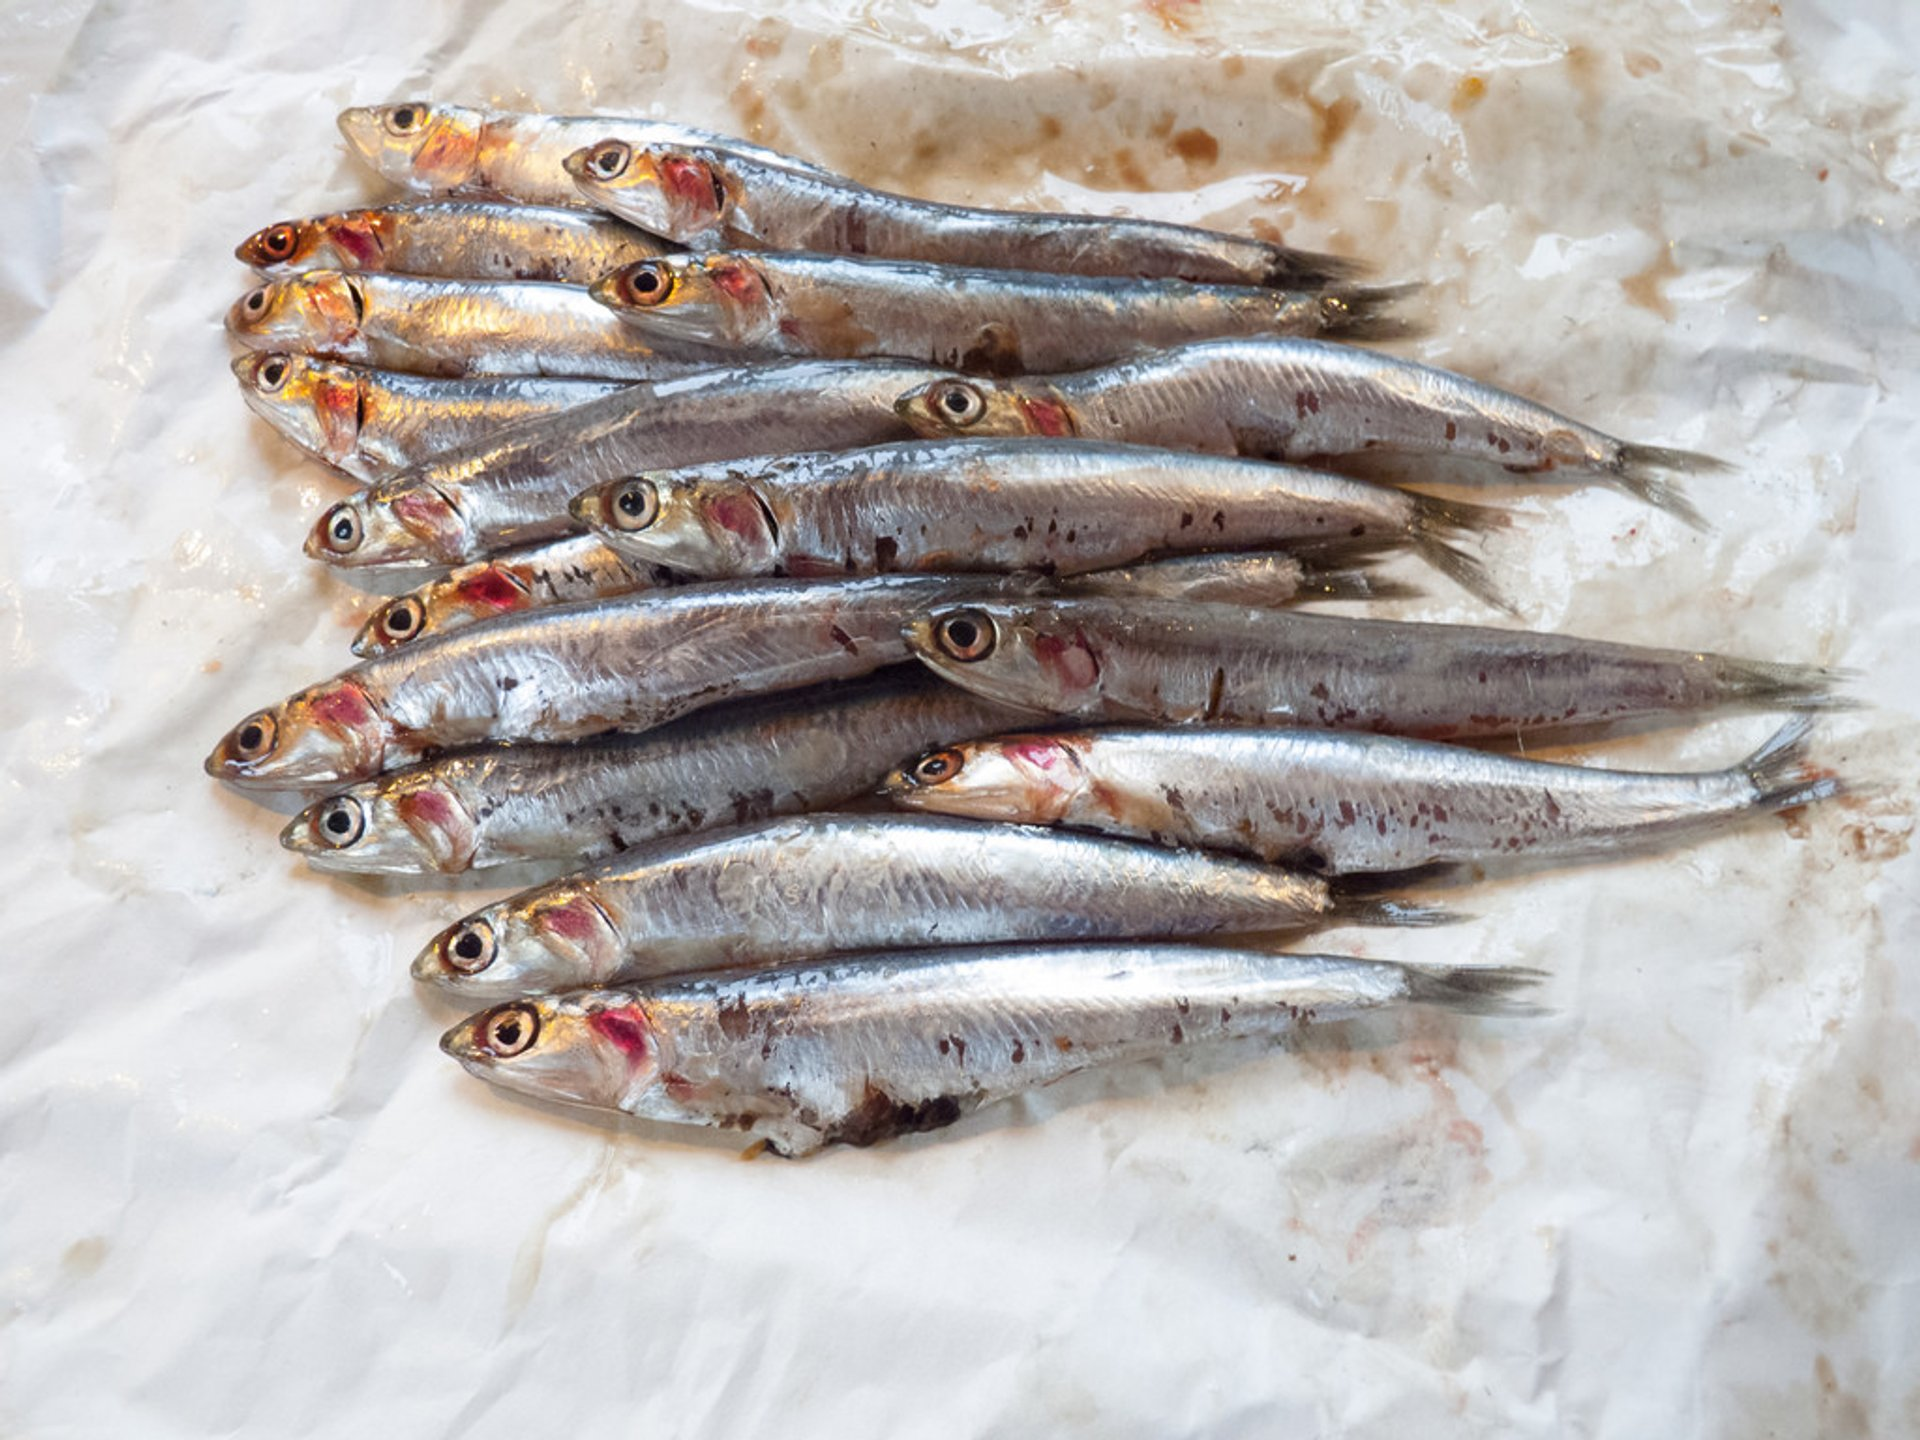 Anchovies in Corsica 2020 - Best Time